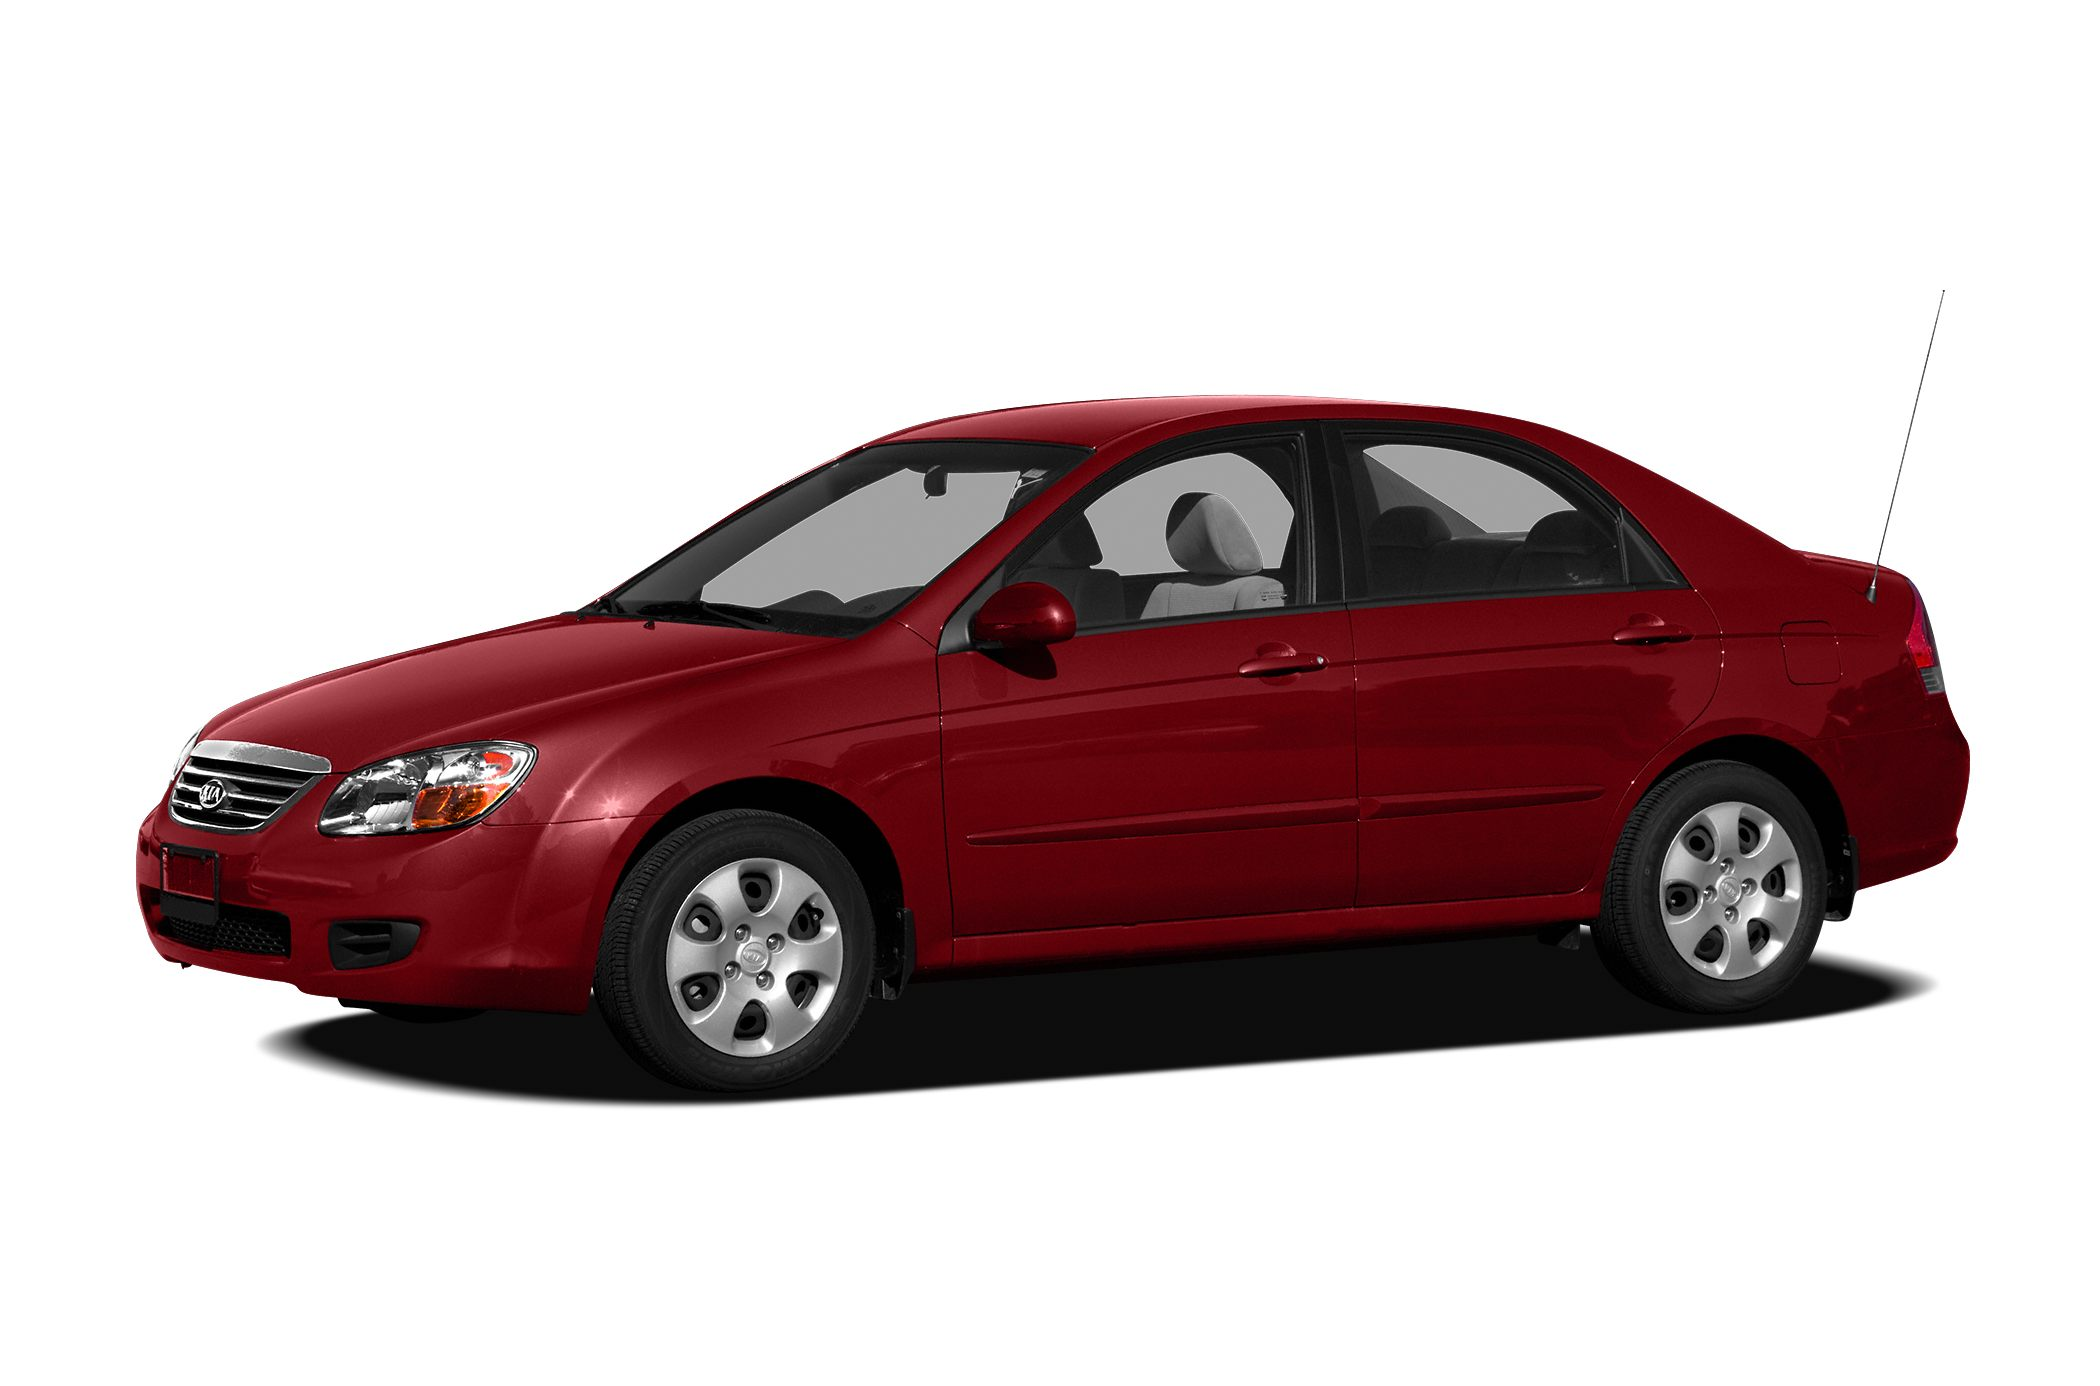 Used Cars for Sale Near Me Under 6000 Beautiful Oklahoma City Ok Cars for Sale Under 6 000 Miles